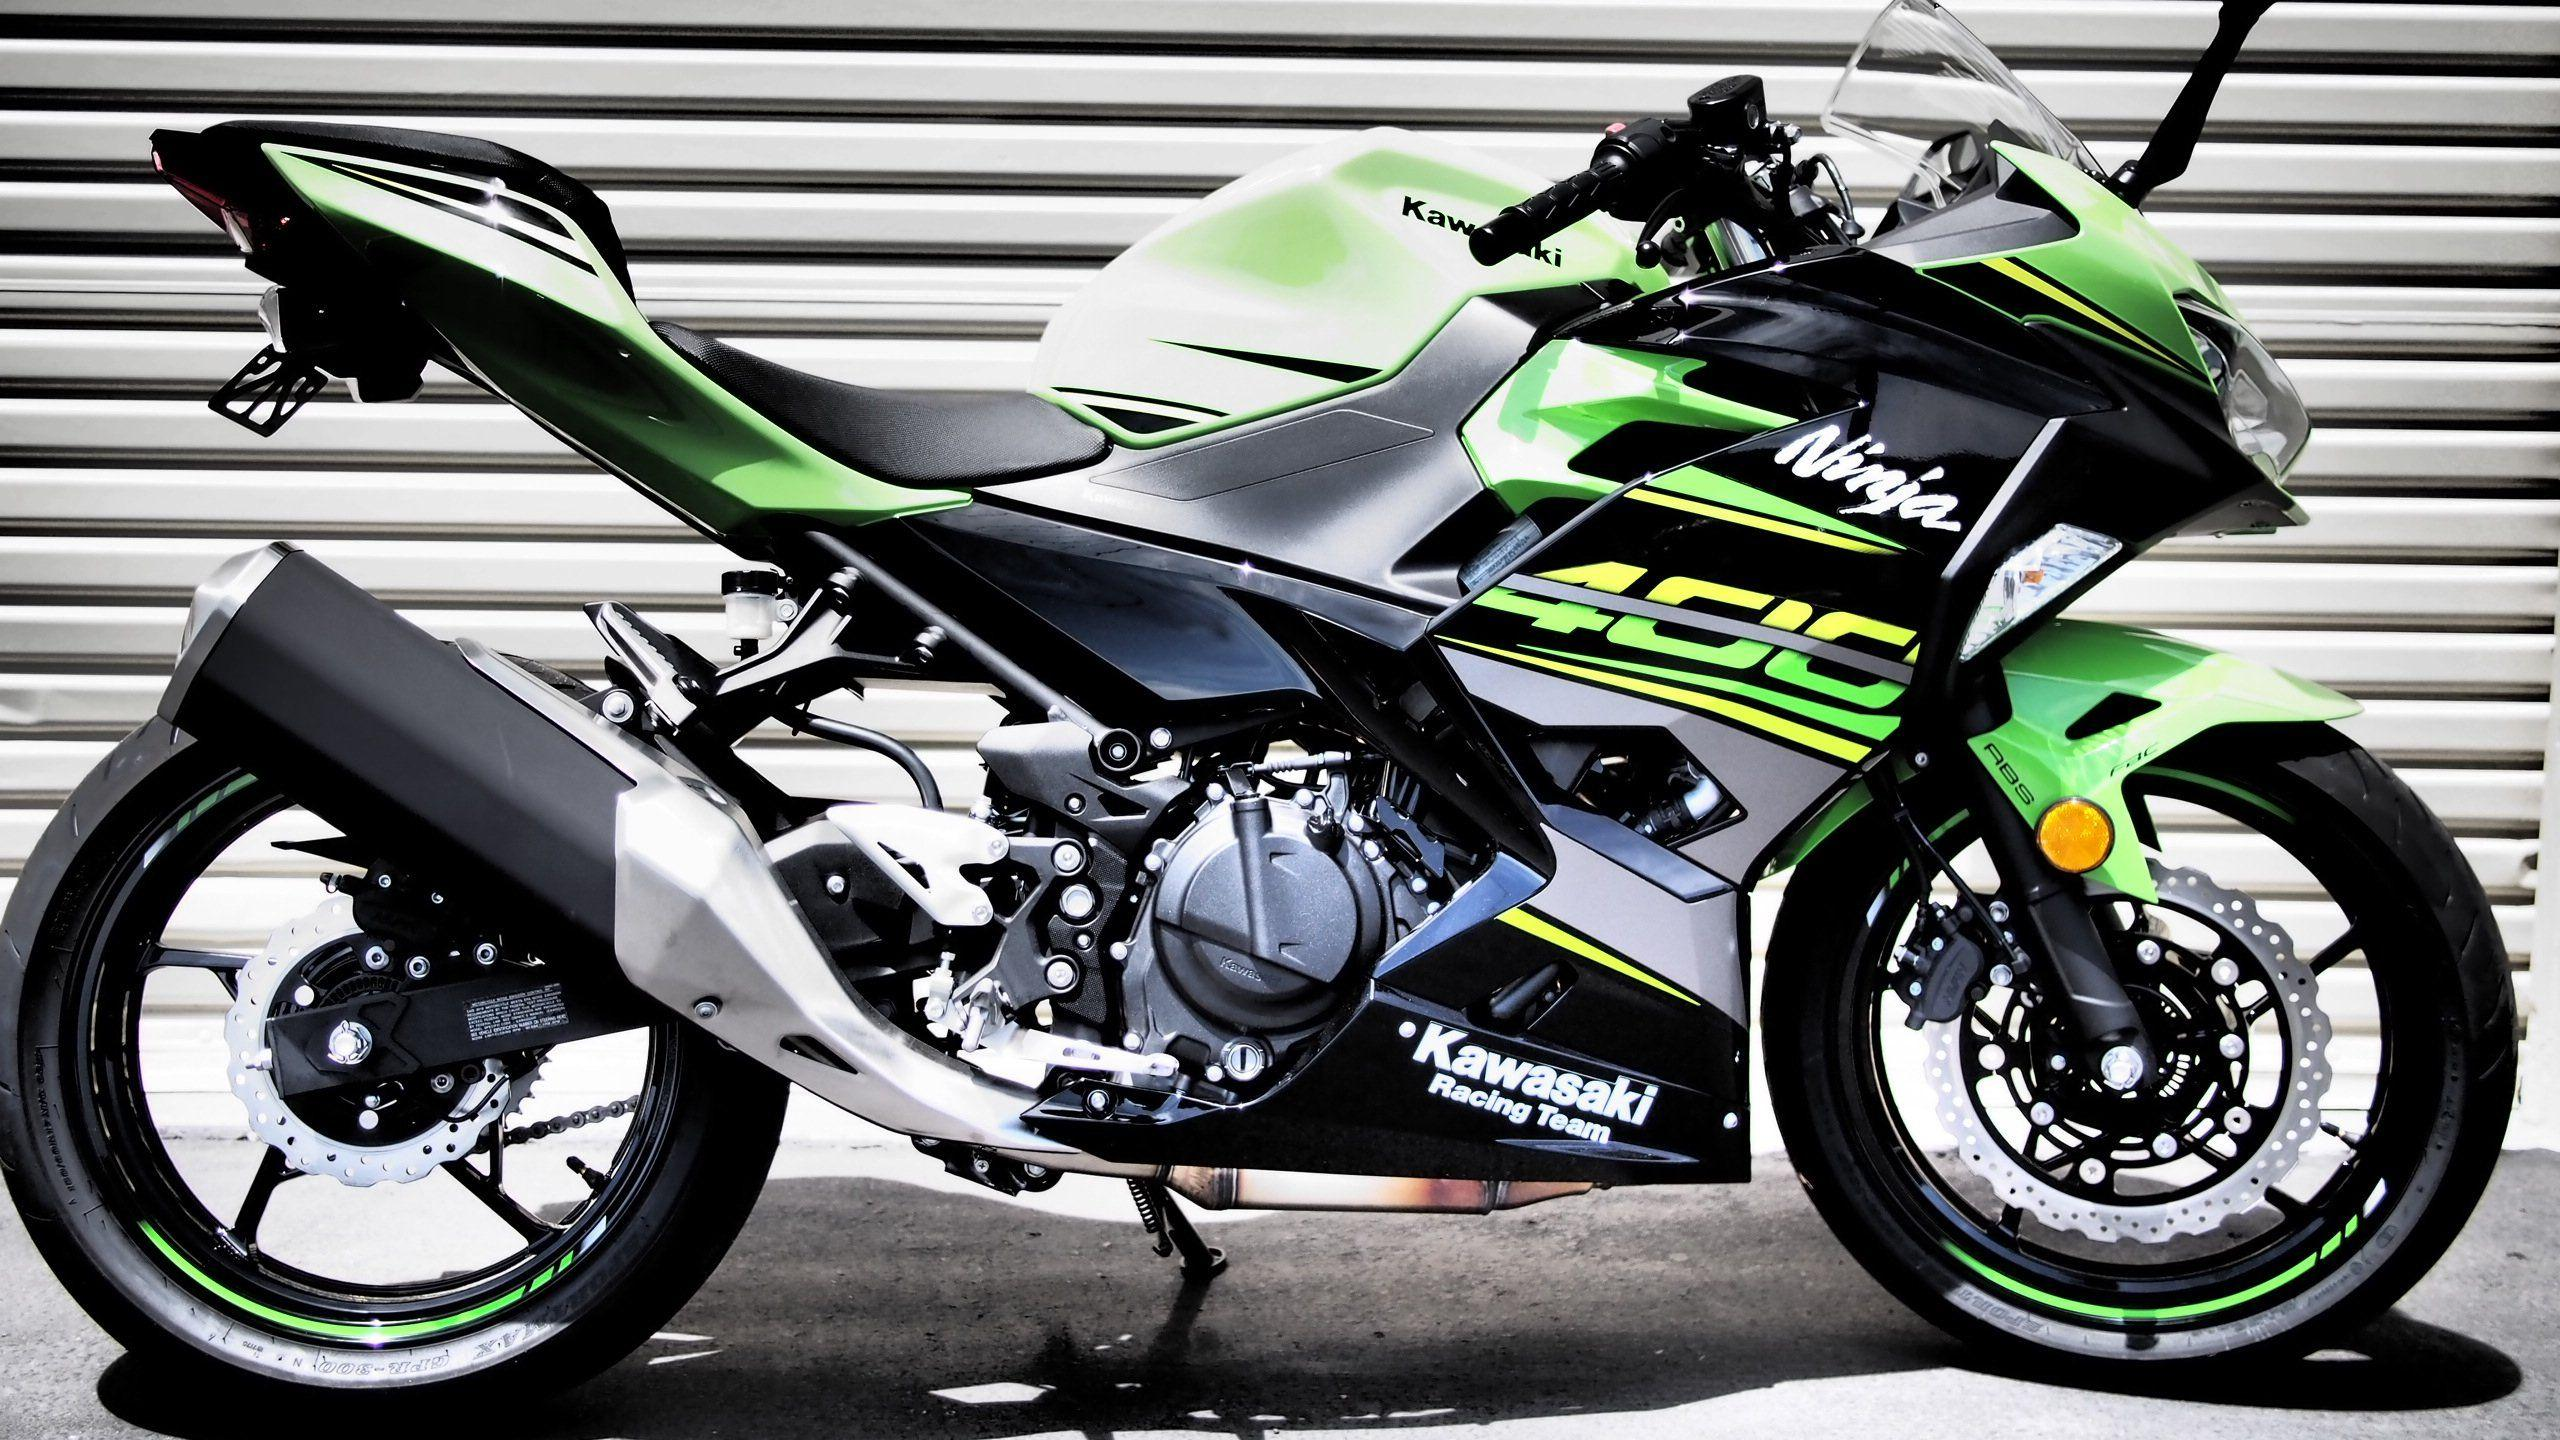 Kawasaki Ninja 400 Wallpapers Wallpaper Cave